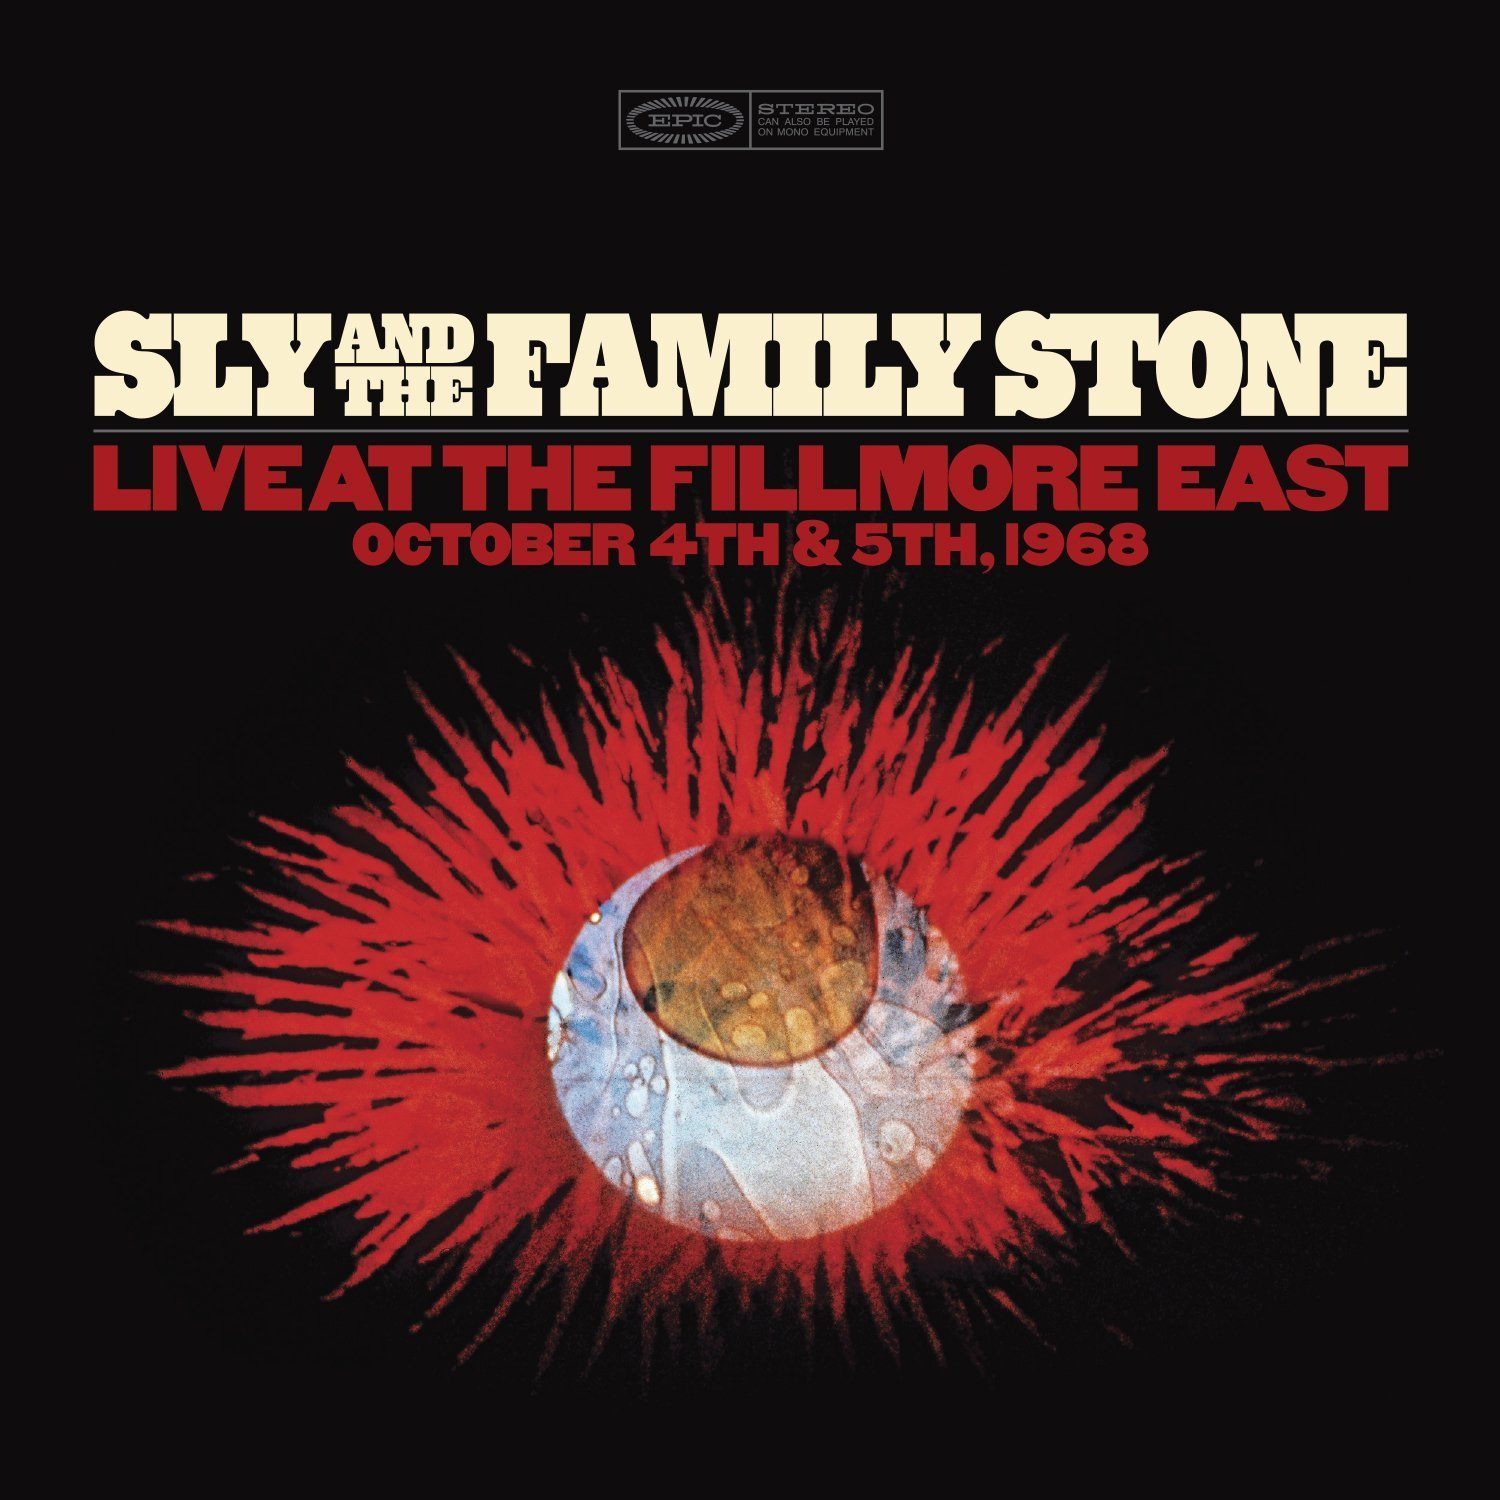 SLY & THE FAMILY STONE — LIVE AT THE FILLMORE EAST OCTOBER 4th & 5th 1968 TO BE RELEASED FRIDAY, JULY 17